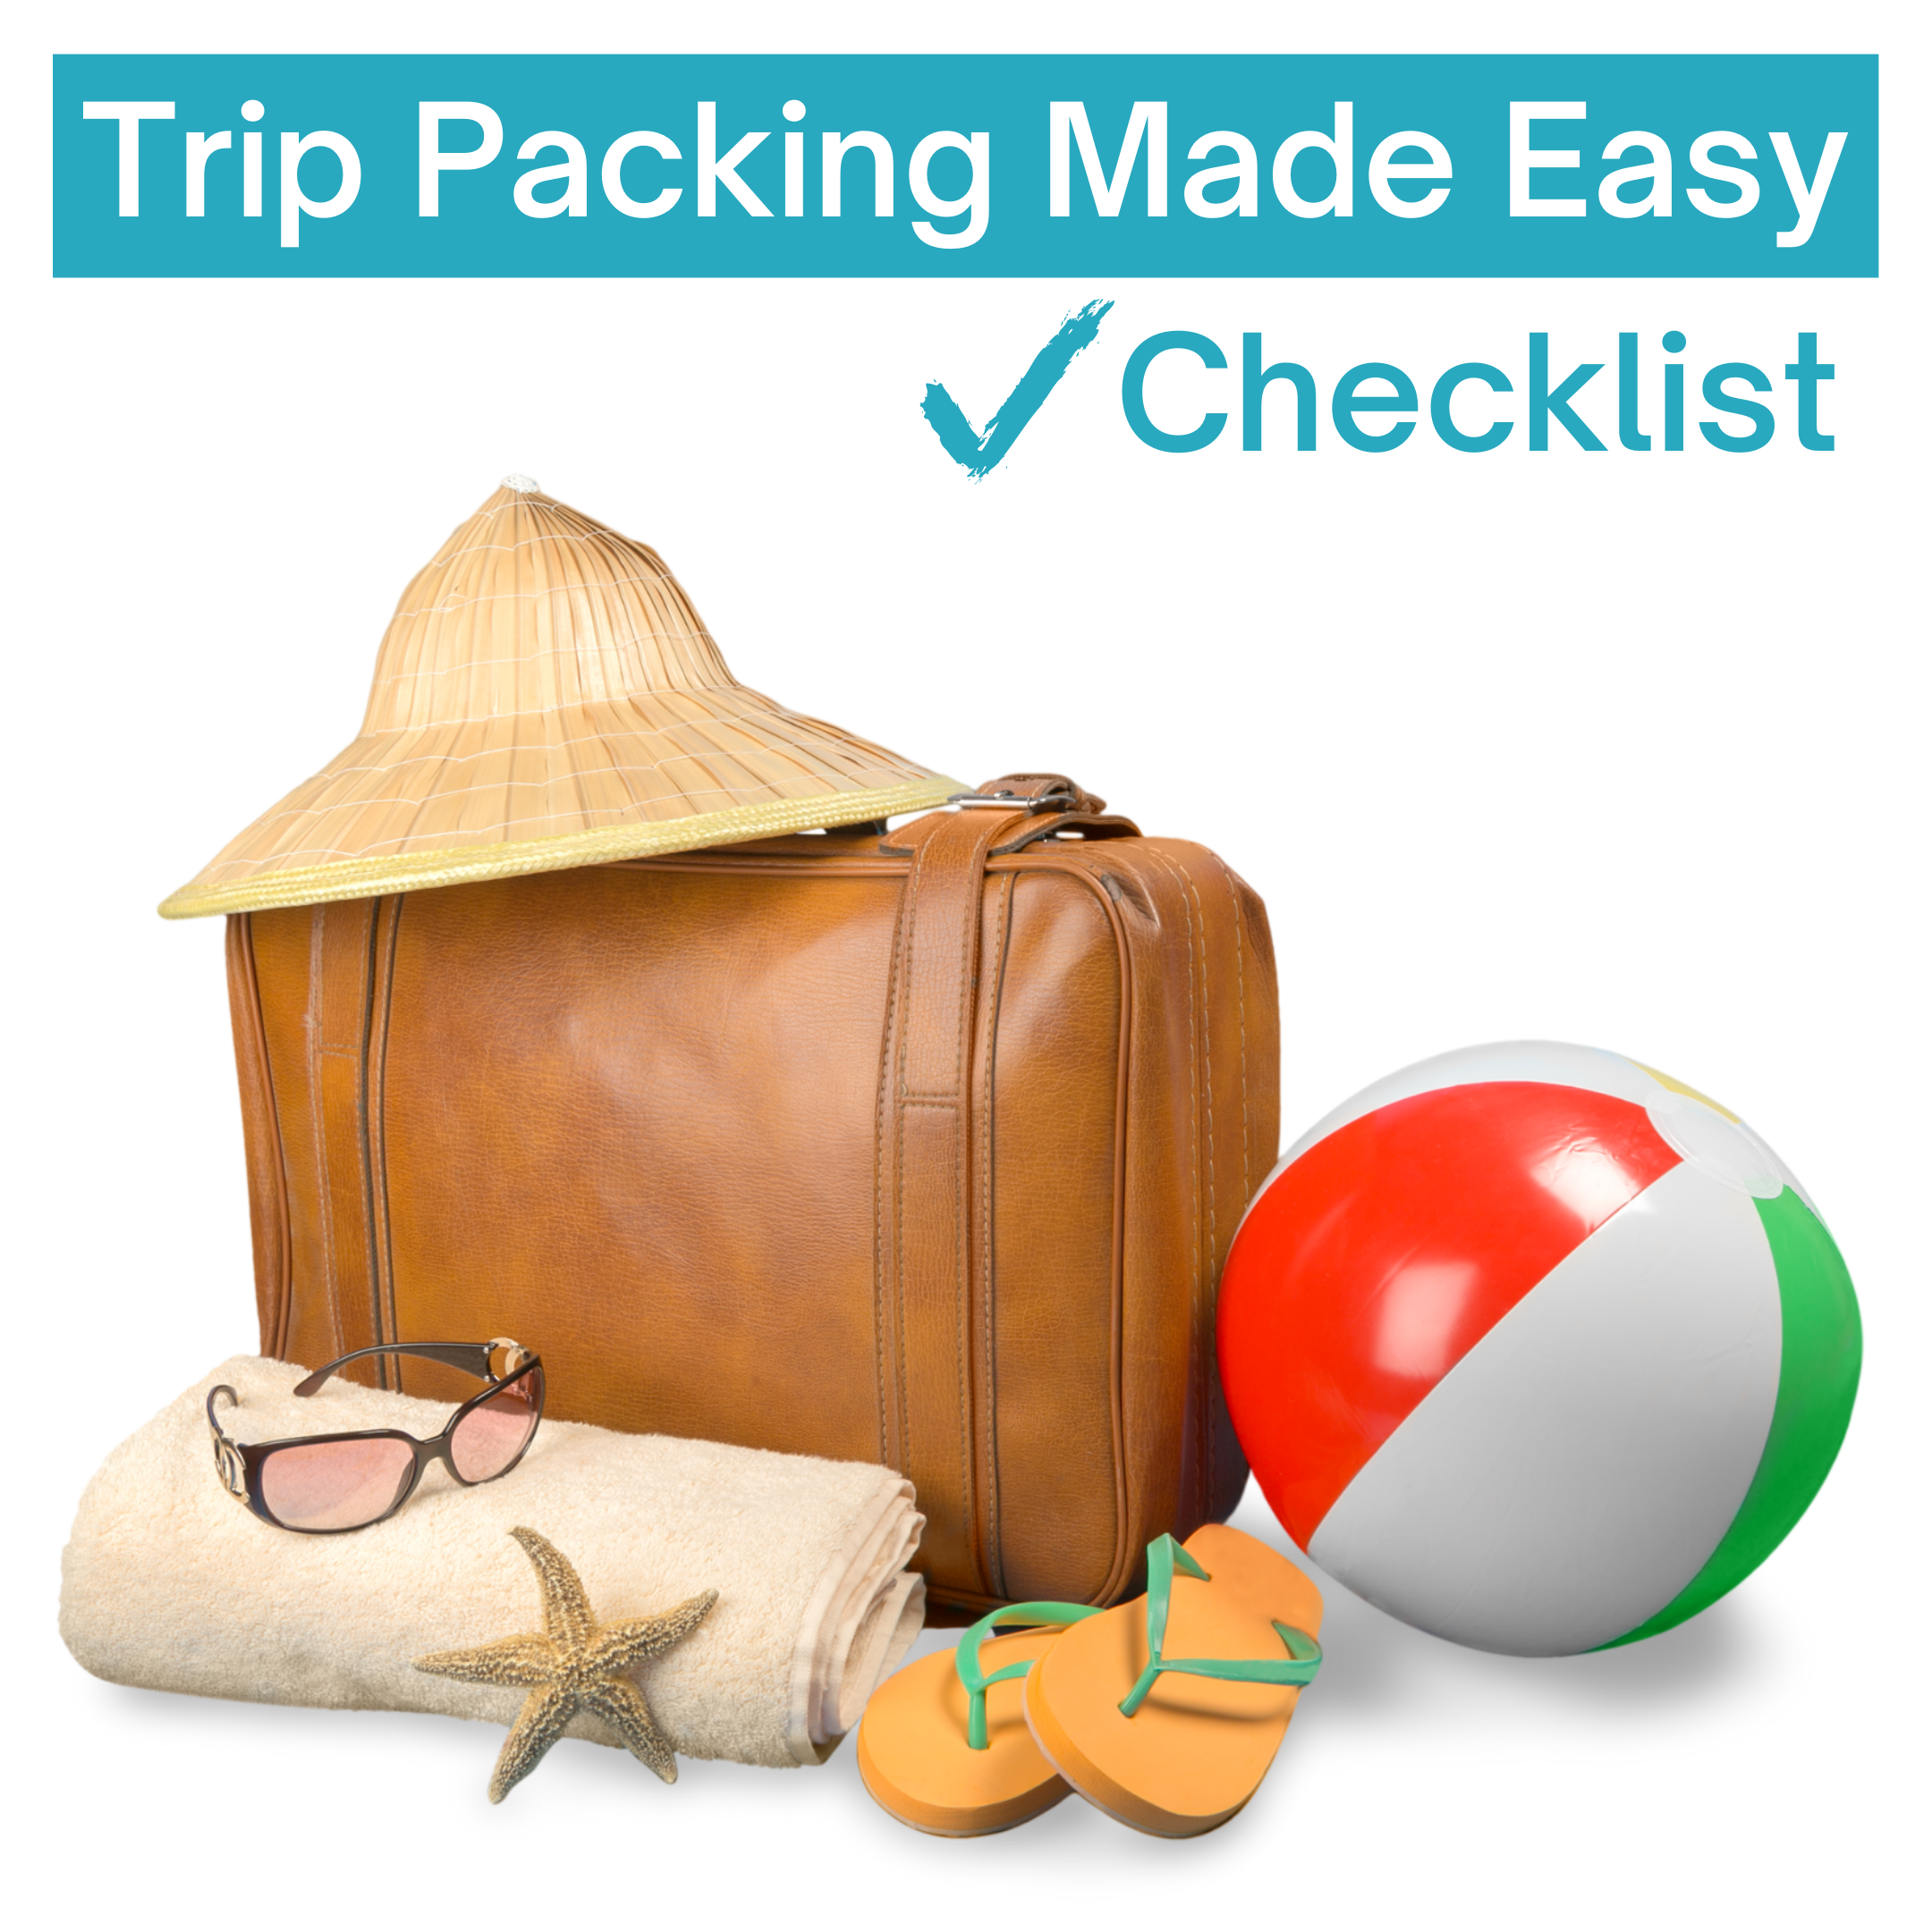 The 4 Day Trip Packing Checklist